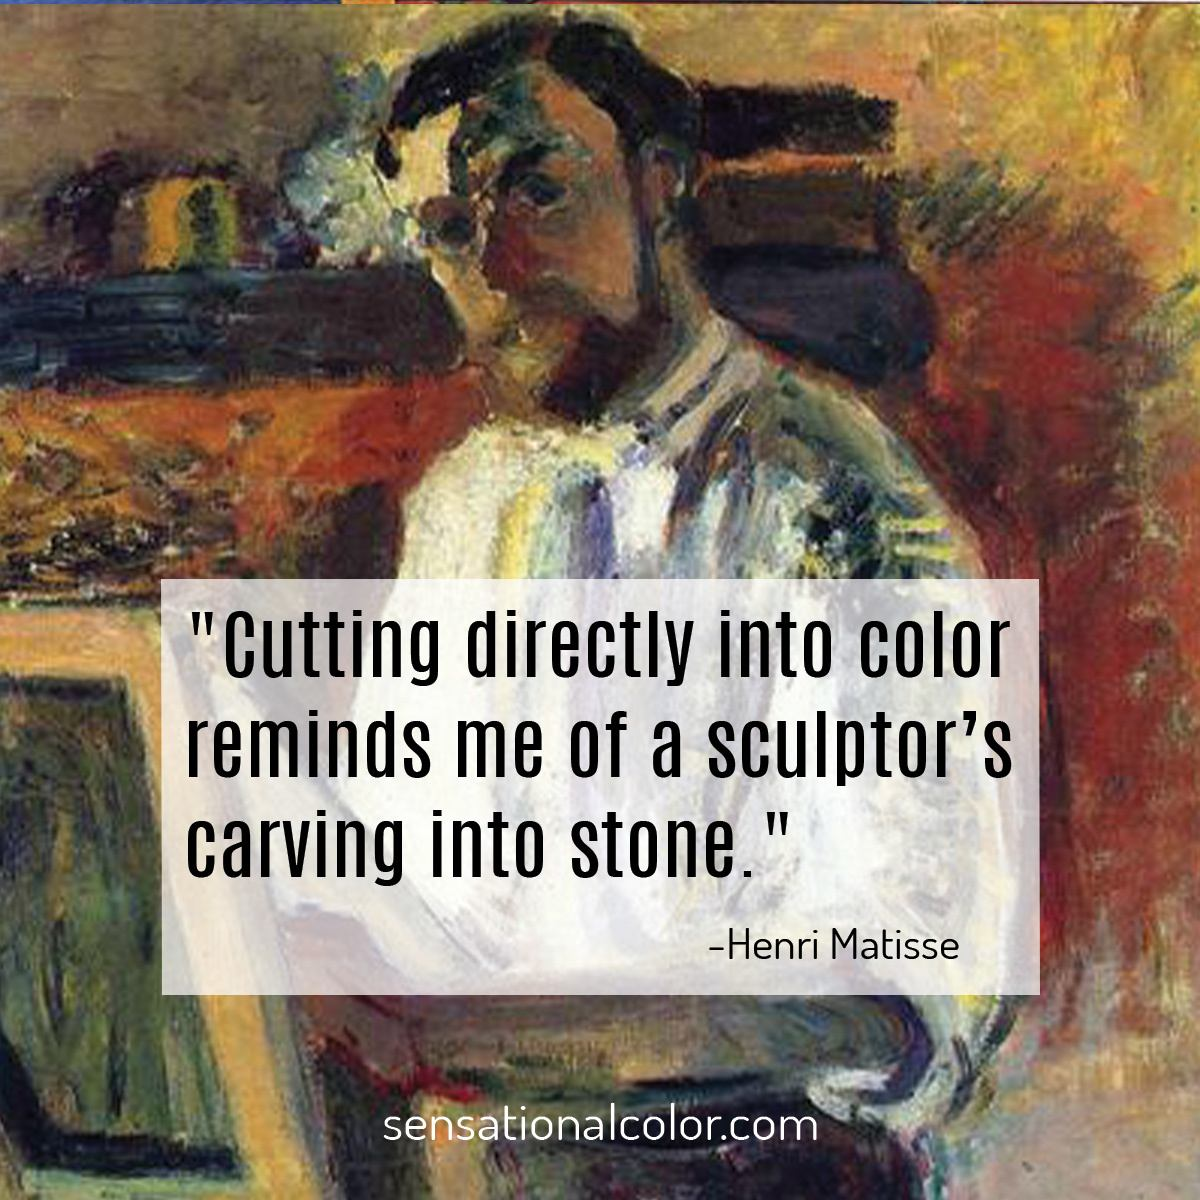 """Cutting directly into color reminds me of a sculptor's carving into stone.""  - Henri Matisse"